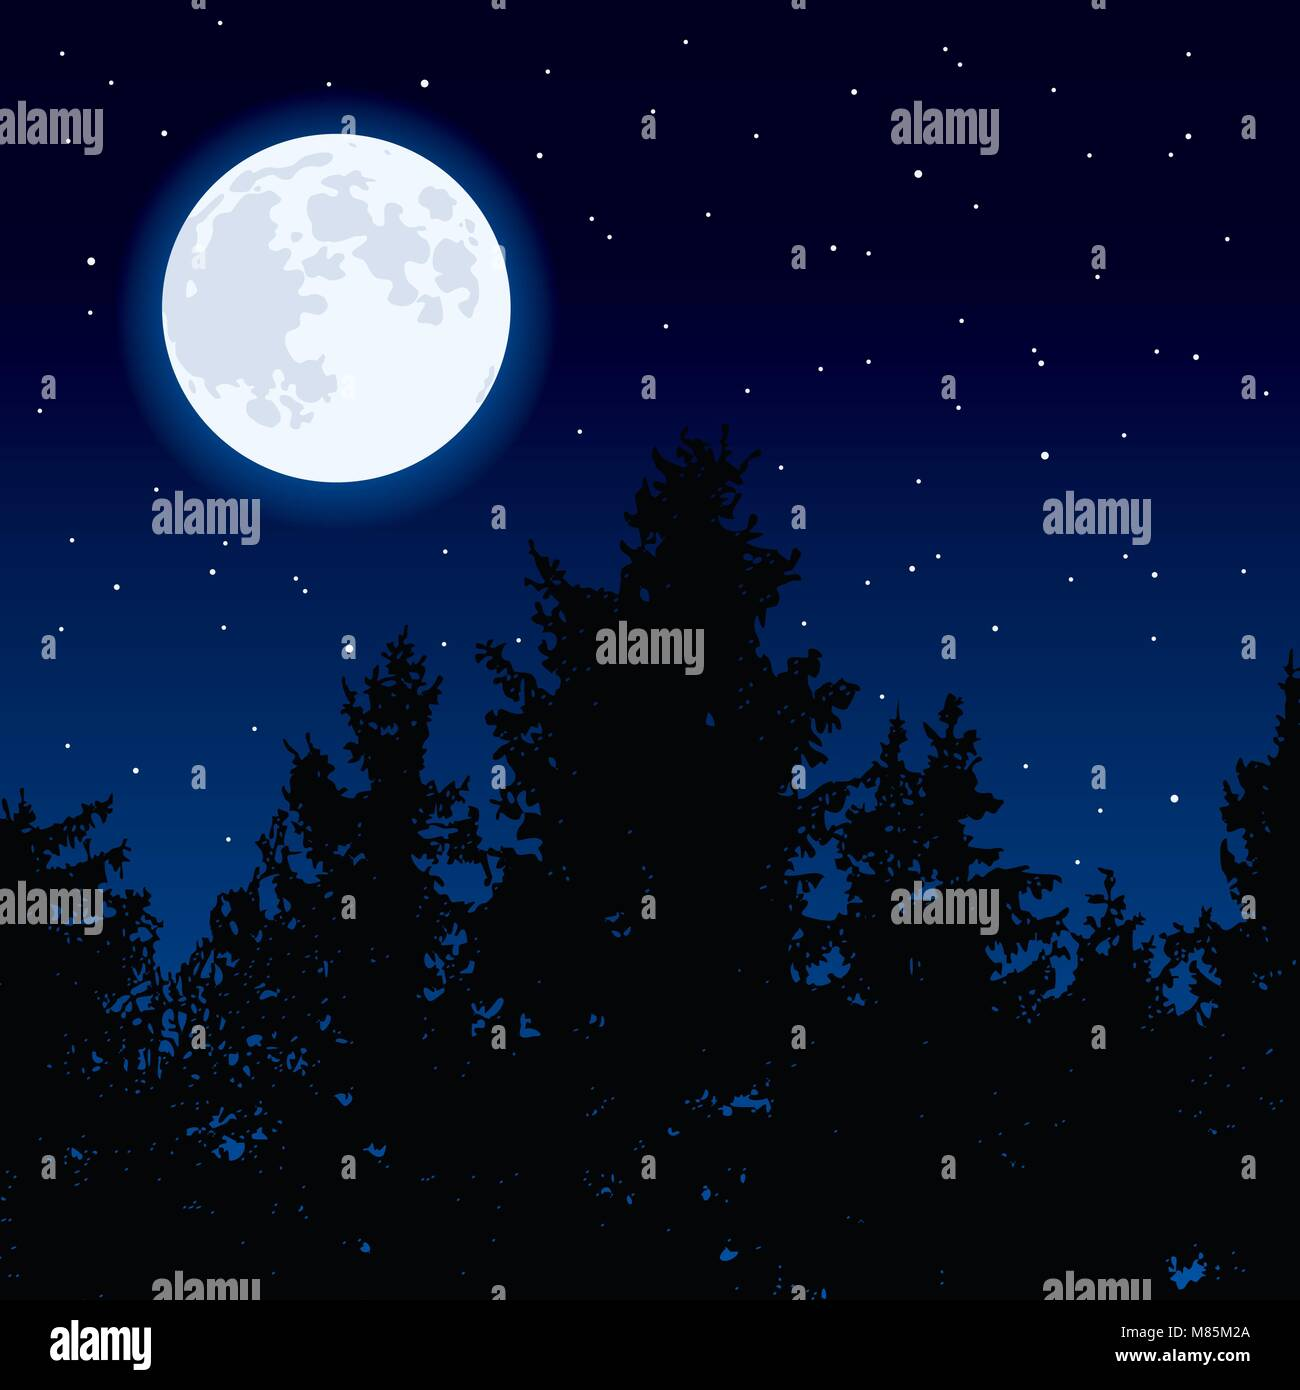 vector background with glowing moon in night sky and dark forest trees. full moon phase. eps10 illustration Stock Vector